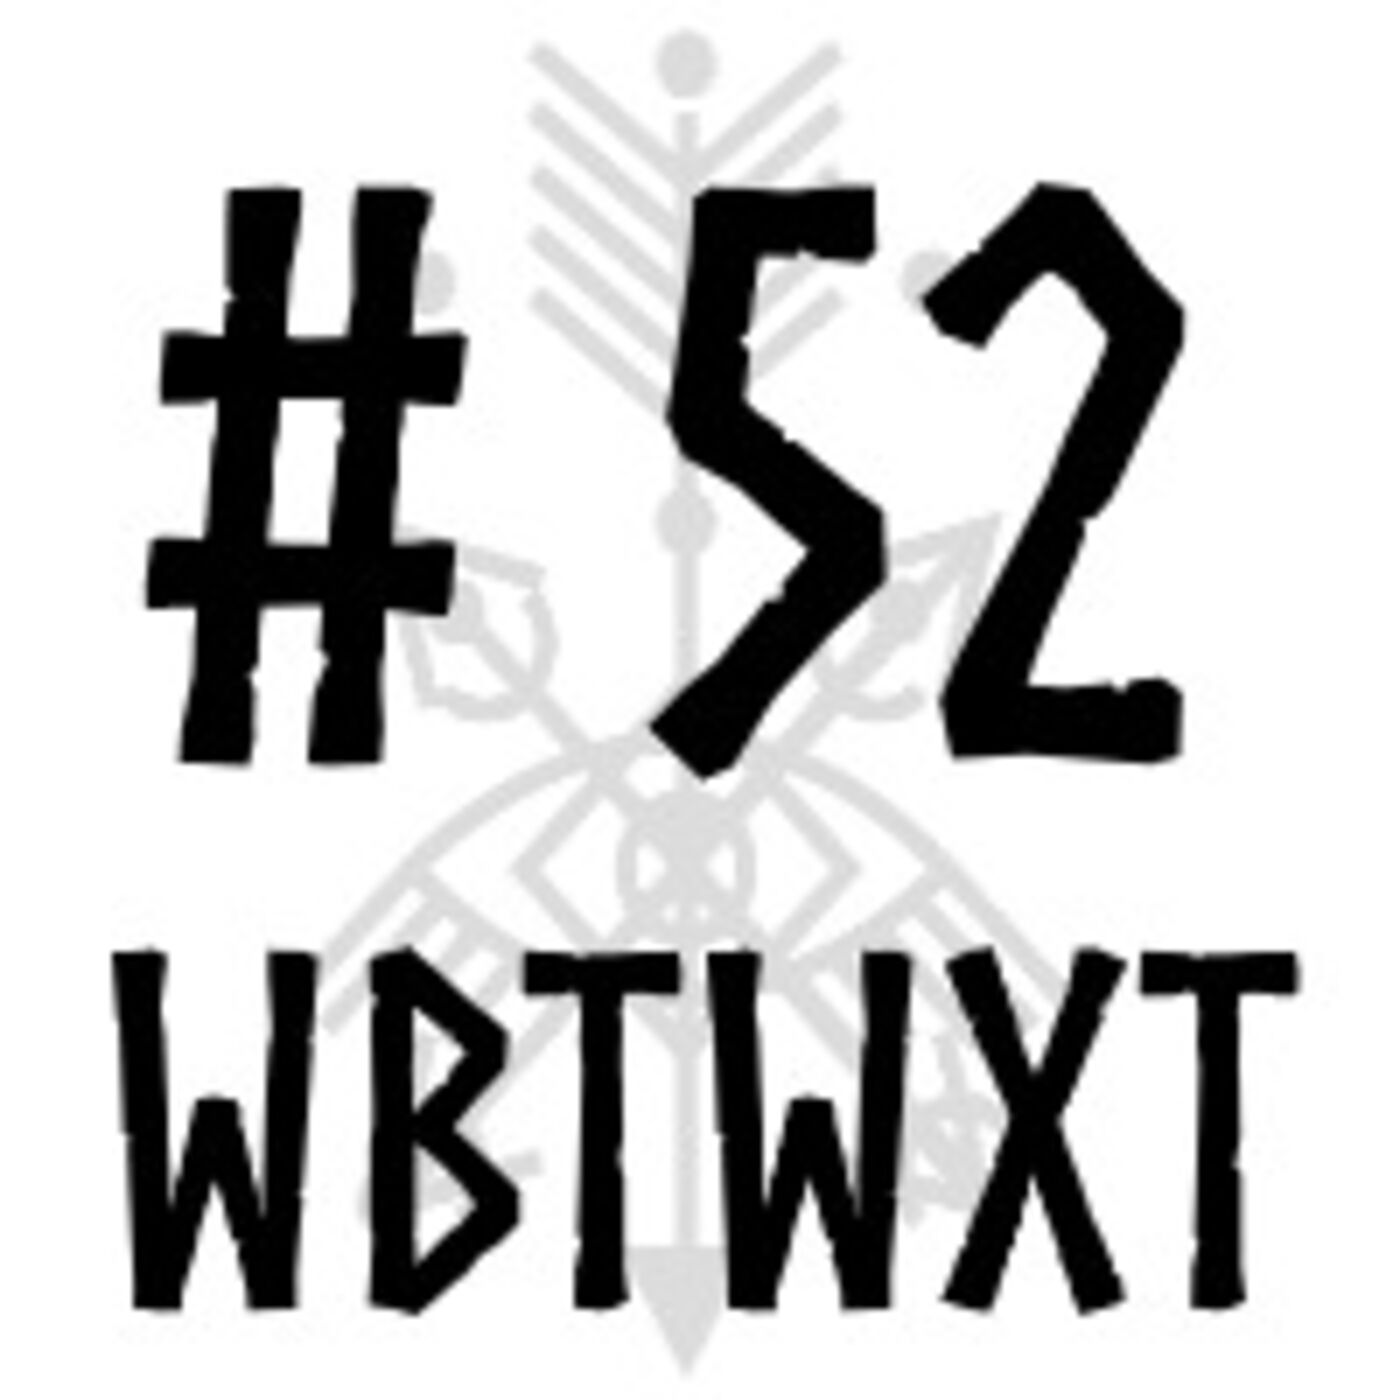 WBTWXT Ep #52 - Pokemancy and Pop Culture Magic with Special Guest: Ursa from Litwick's Portal